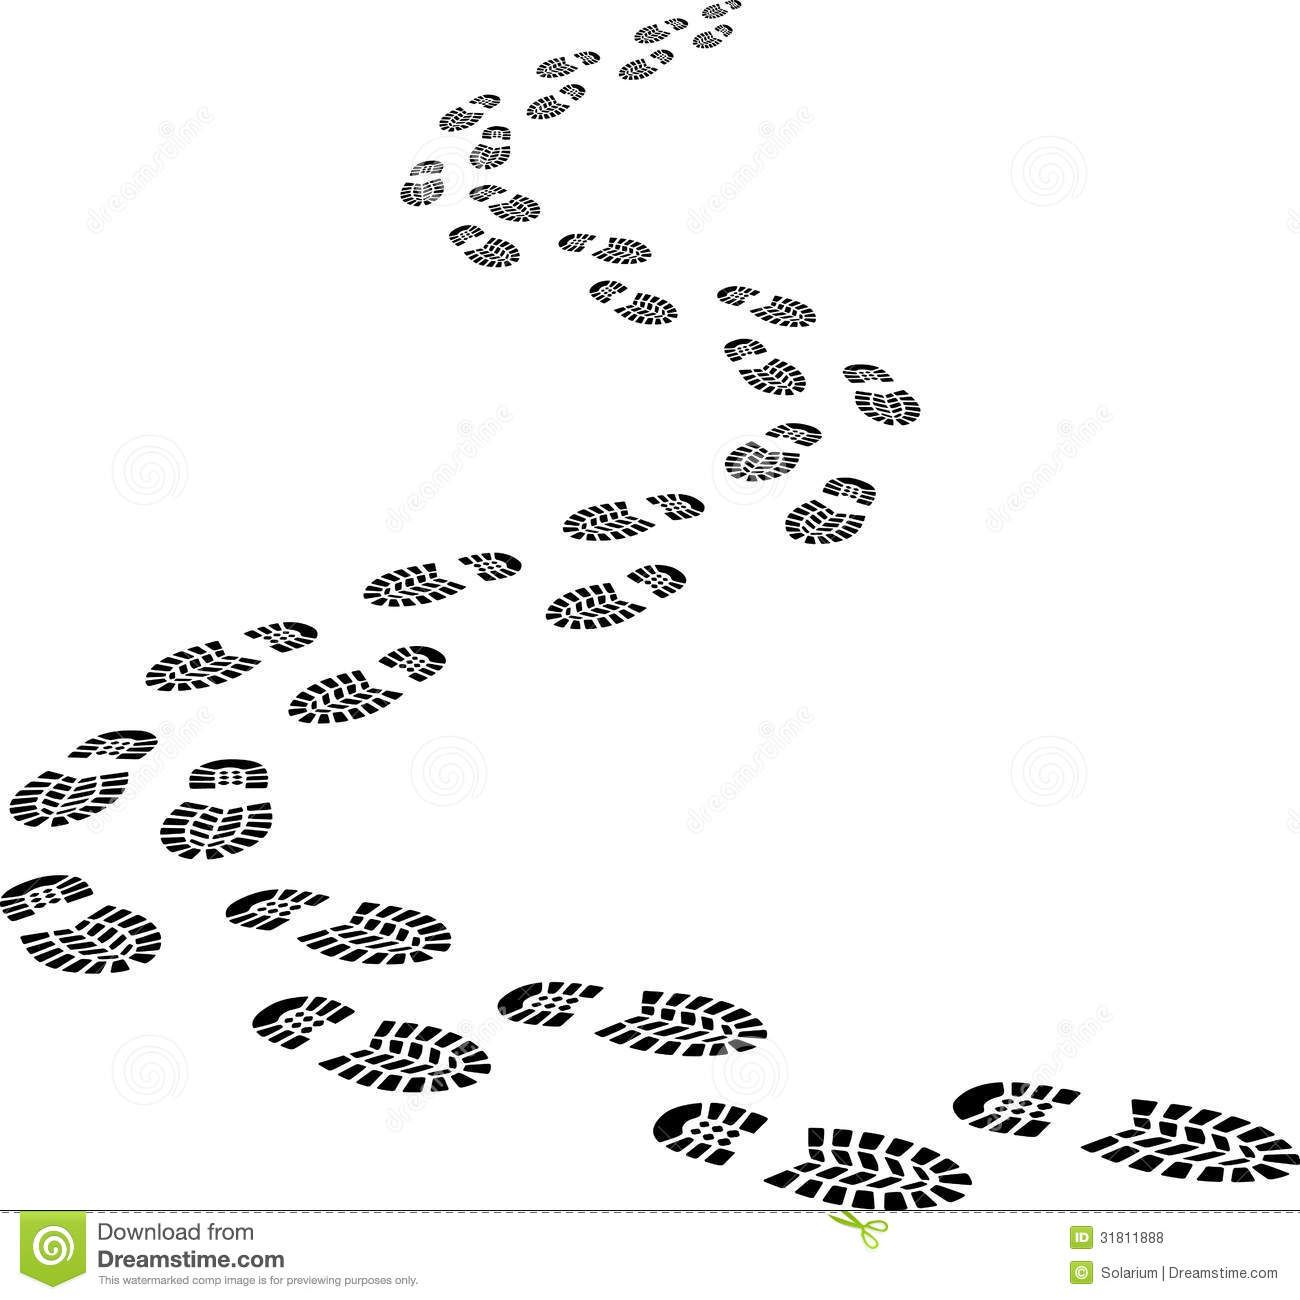 Footprints or are the. Footsteps clipart path